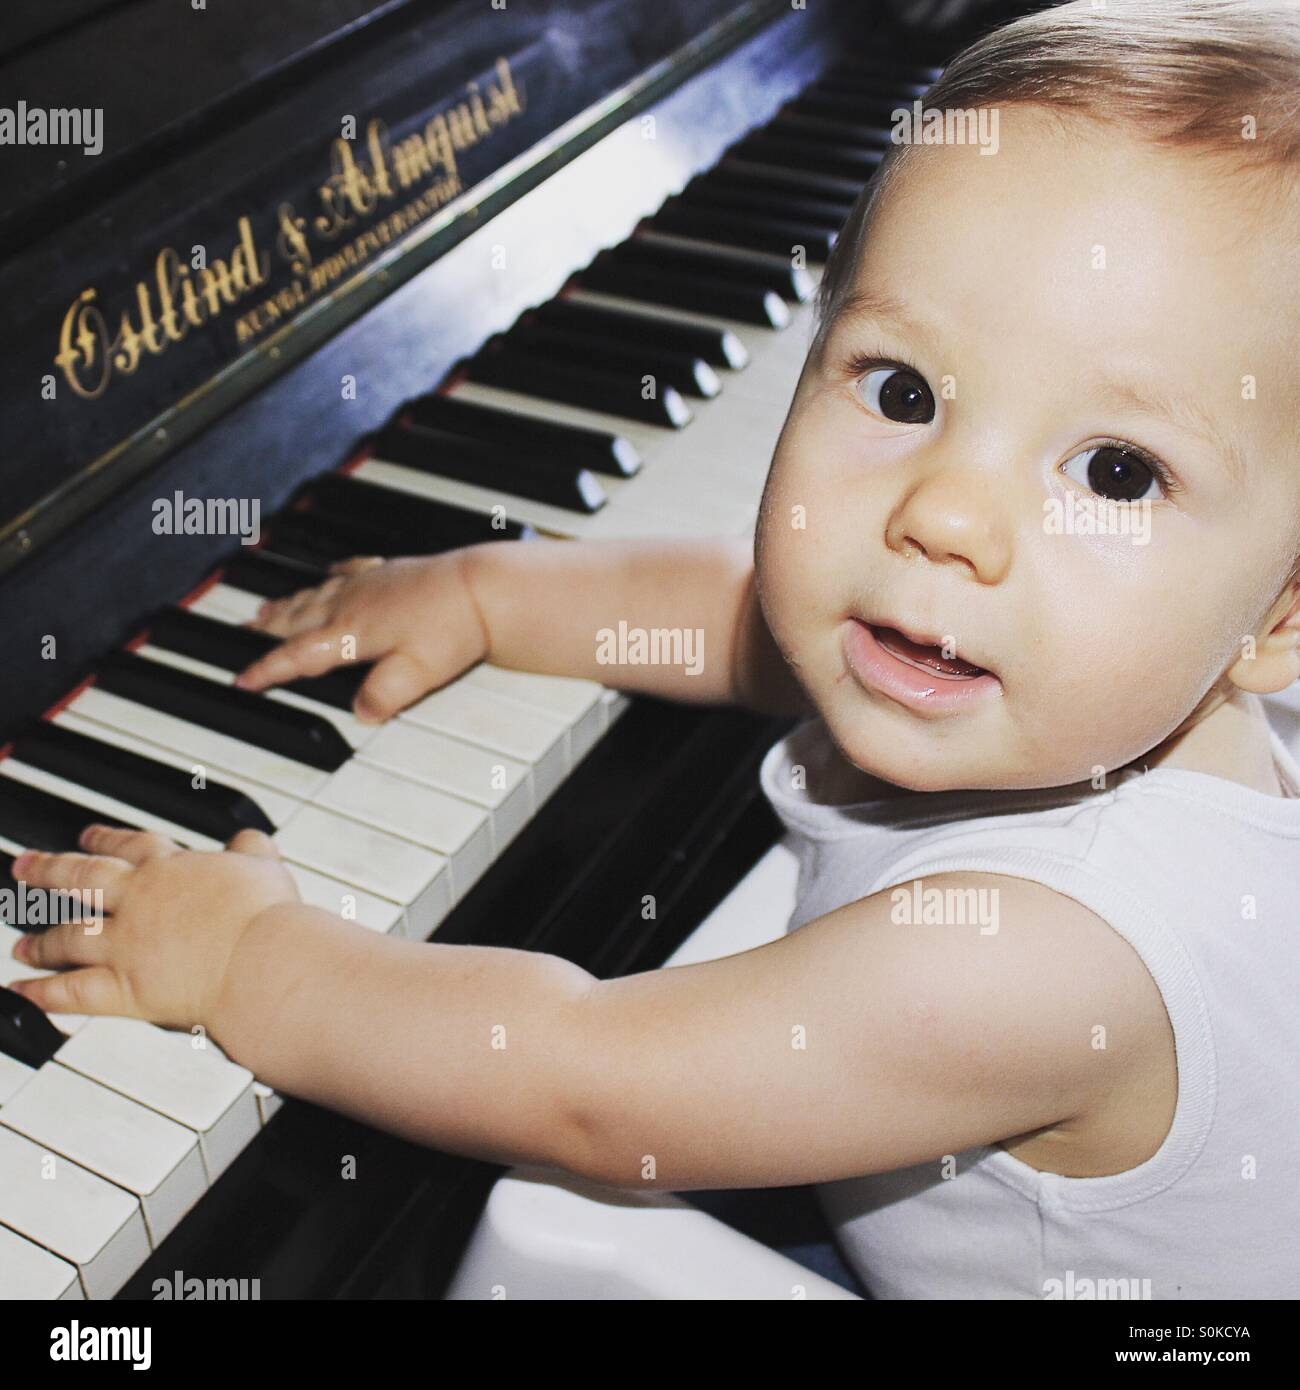 9 months old baby boy playing piano , with both of his hands on the piano keyboard, looking at the camera with a - Stock Image